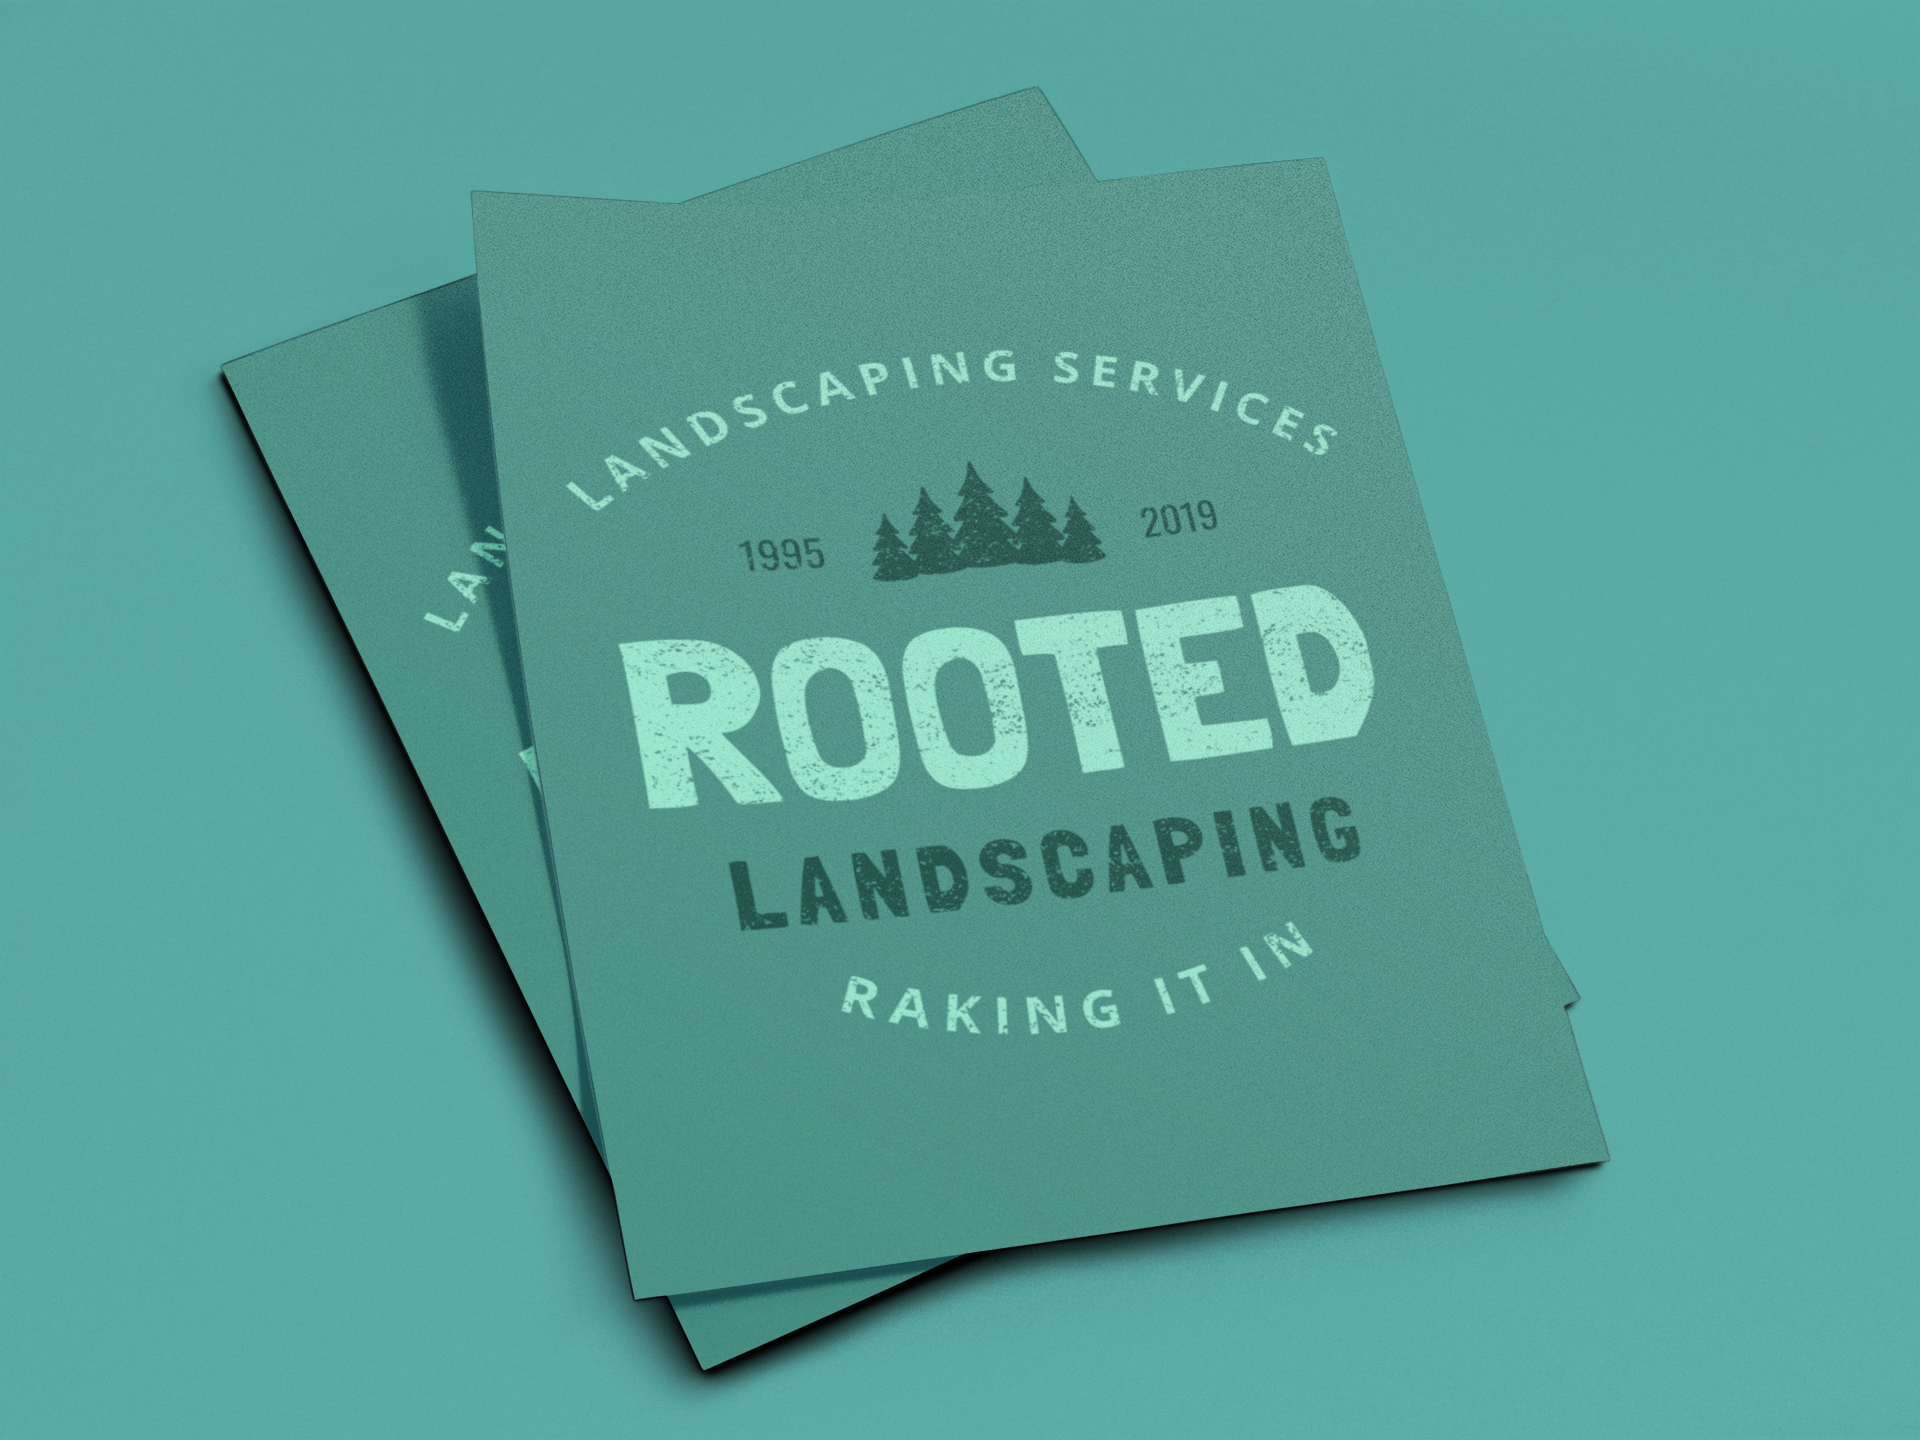 Rooted Landscaping.